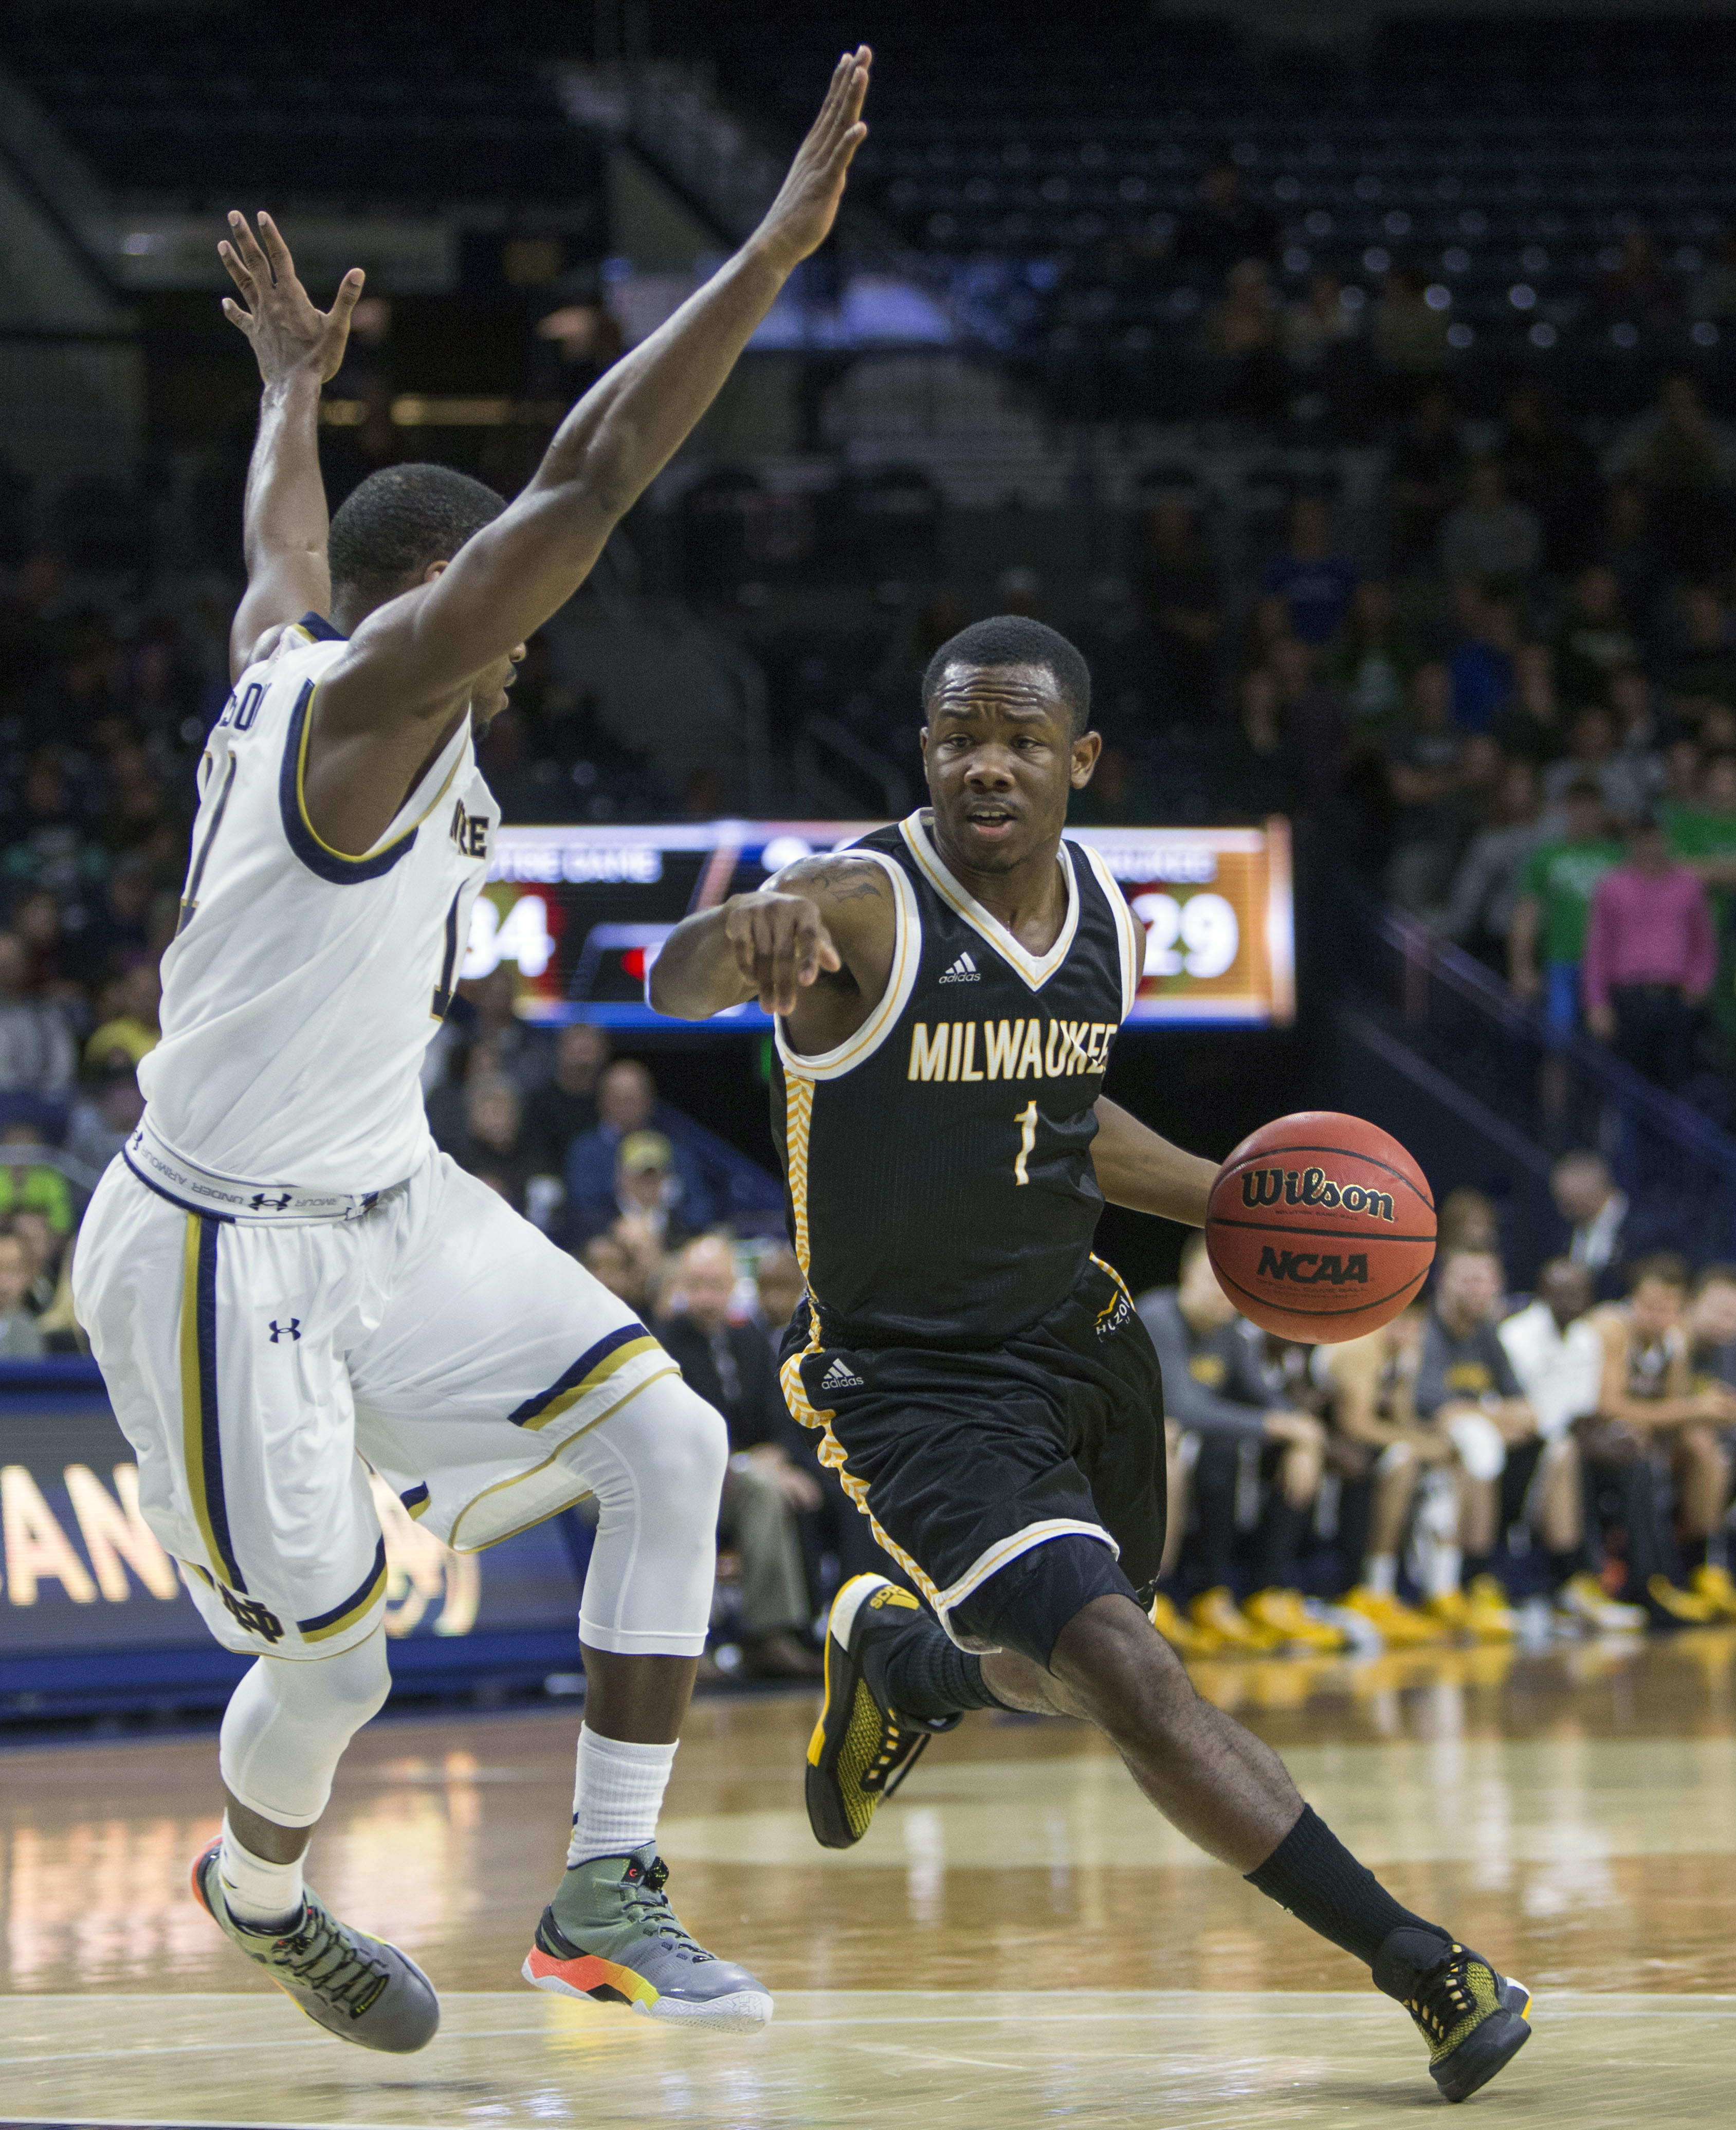 Milwaukee's JordanJohnson (1) moves by Notre Dame's Demetrius Jackson (11) during the first half of an NCAA college basketball game Tuesday, Nov. 17, 2015, in South Bend, Ind.  (AP Photo/Robert Franklin)